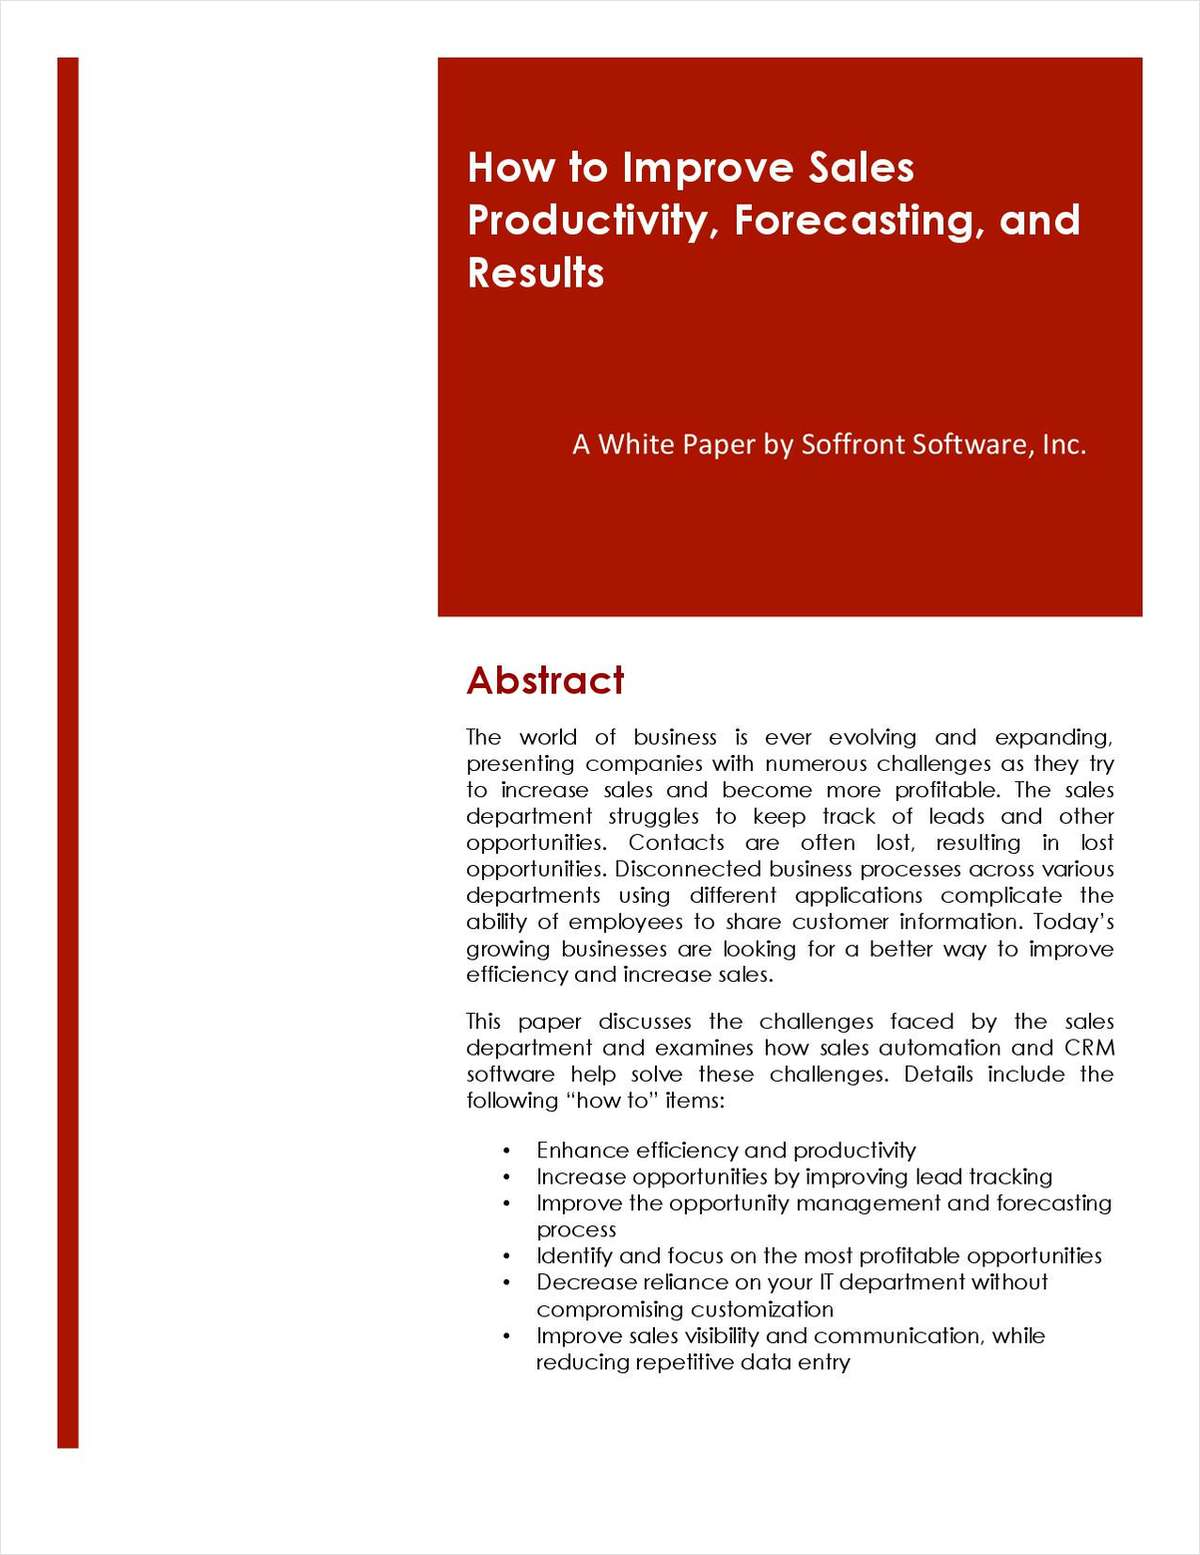 How to Improve Sales Productivity, Forecasting, and Results